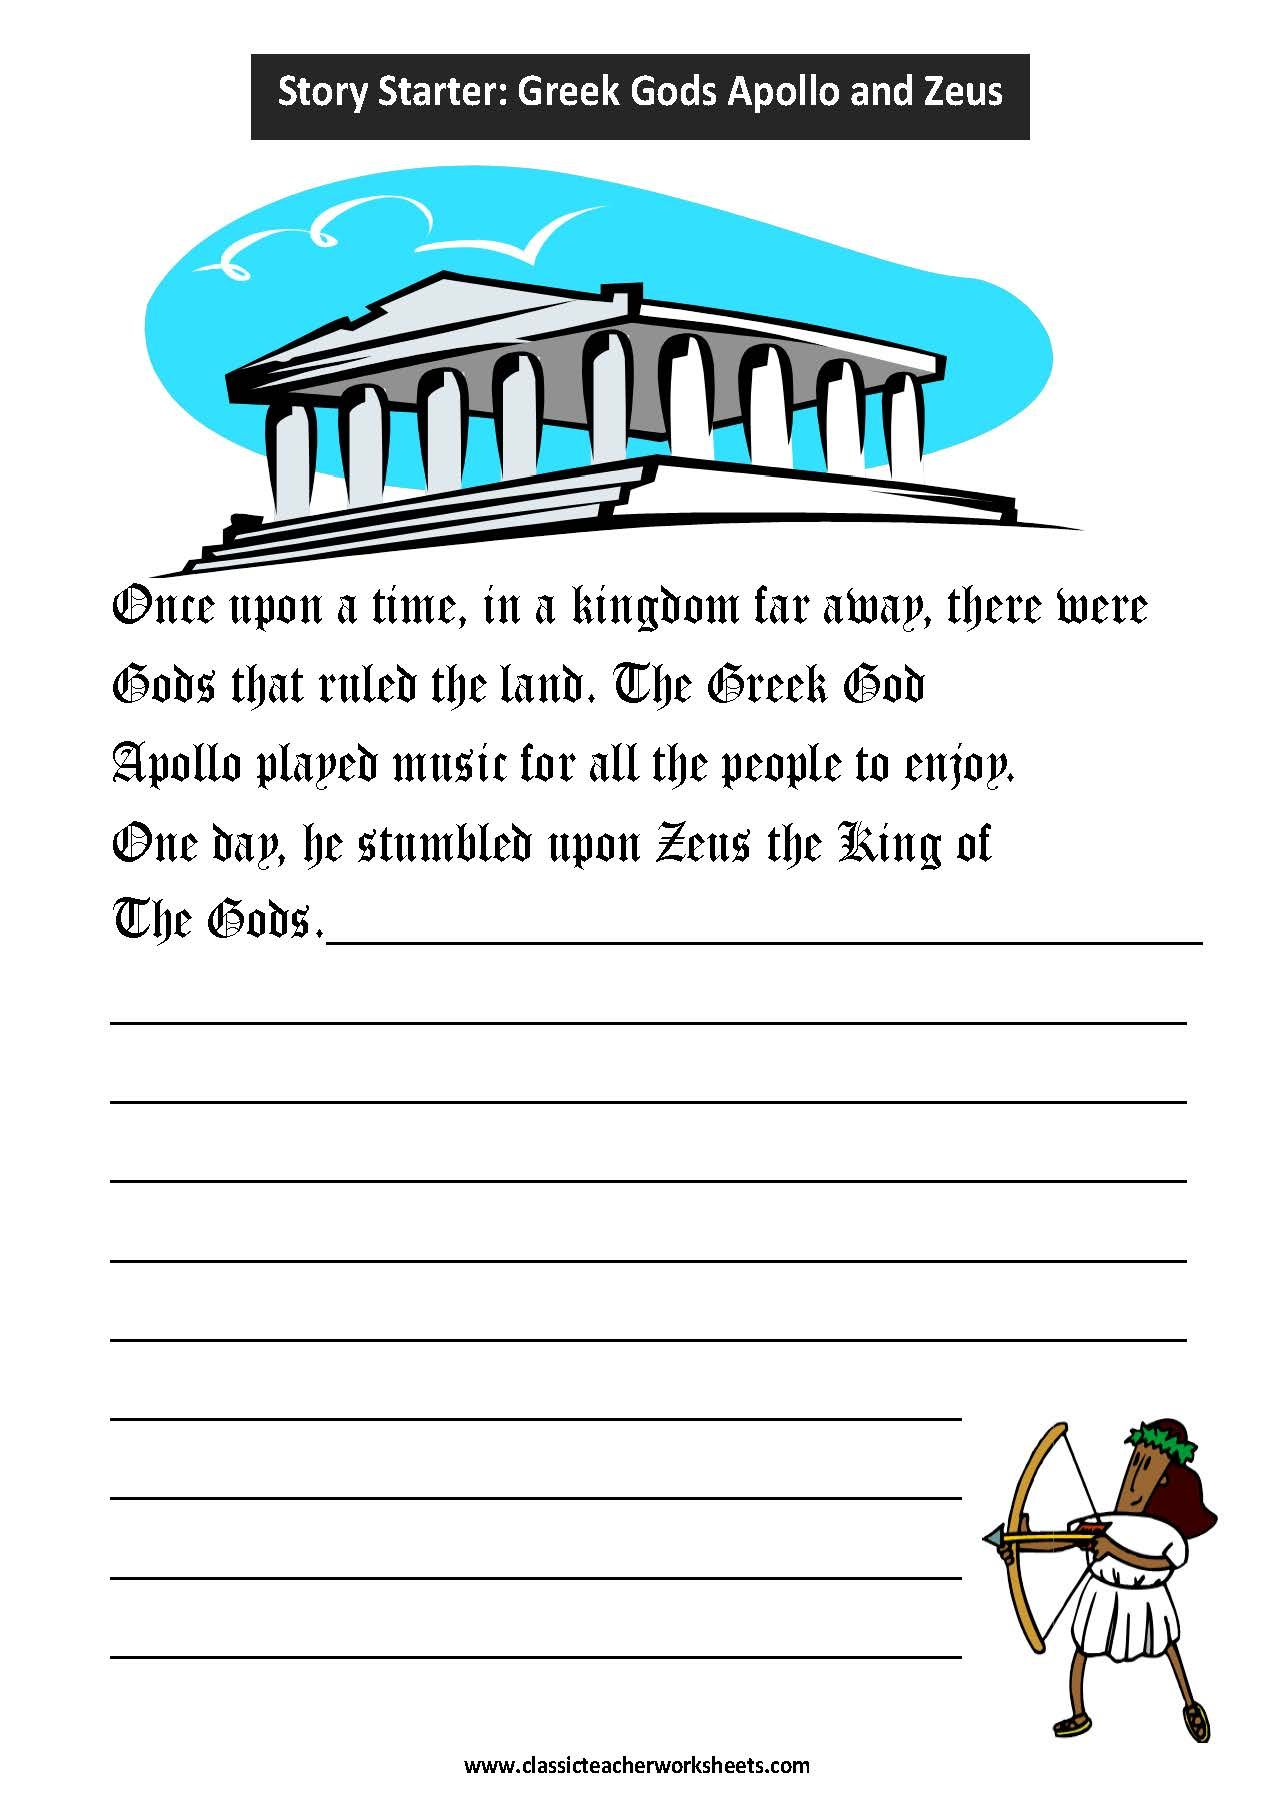 worksheet Greek Mythology Worksheets check out our collection of writing worksheets at classicteacherworksheets com worksheet story starter